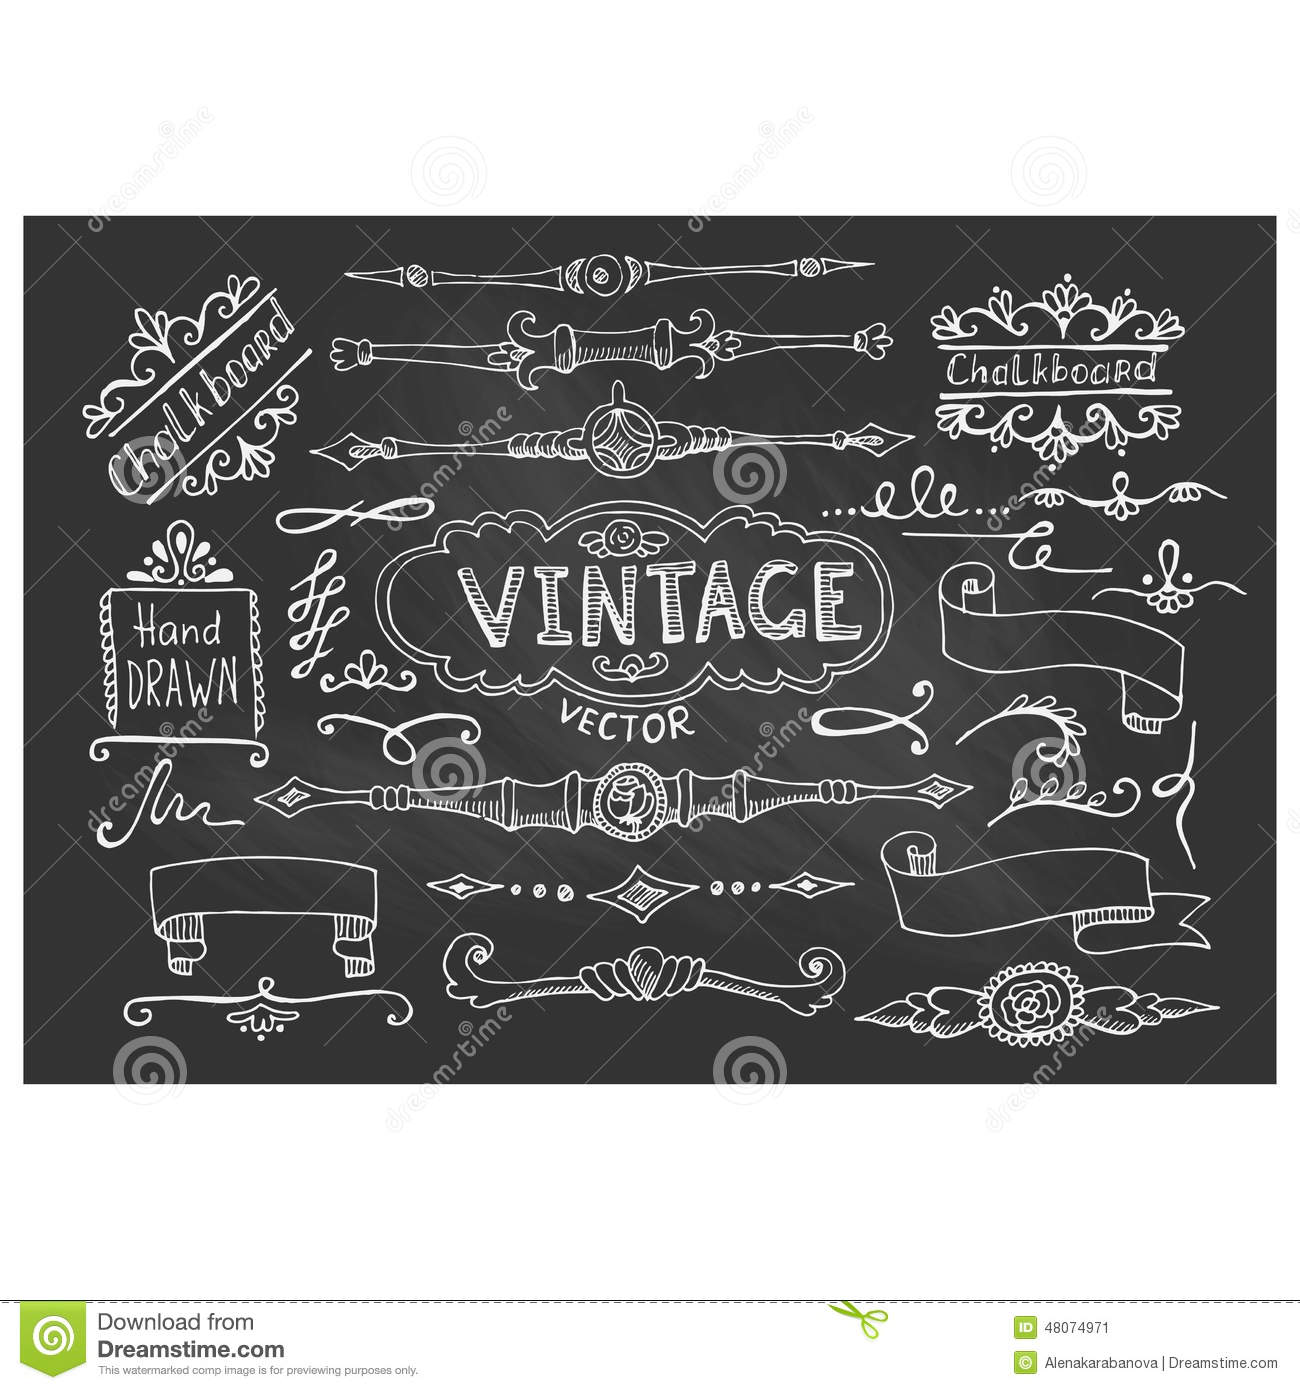 vector illustration of decorative vintage chalkboard elements stock image - Decorative Chalkboards